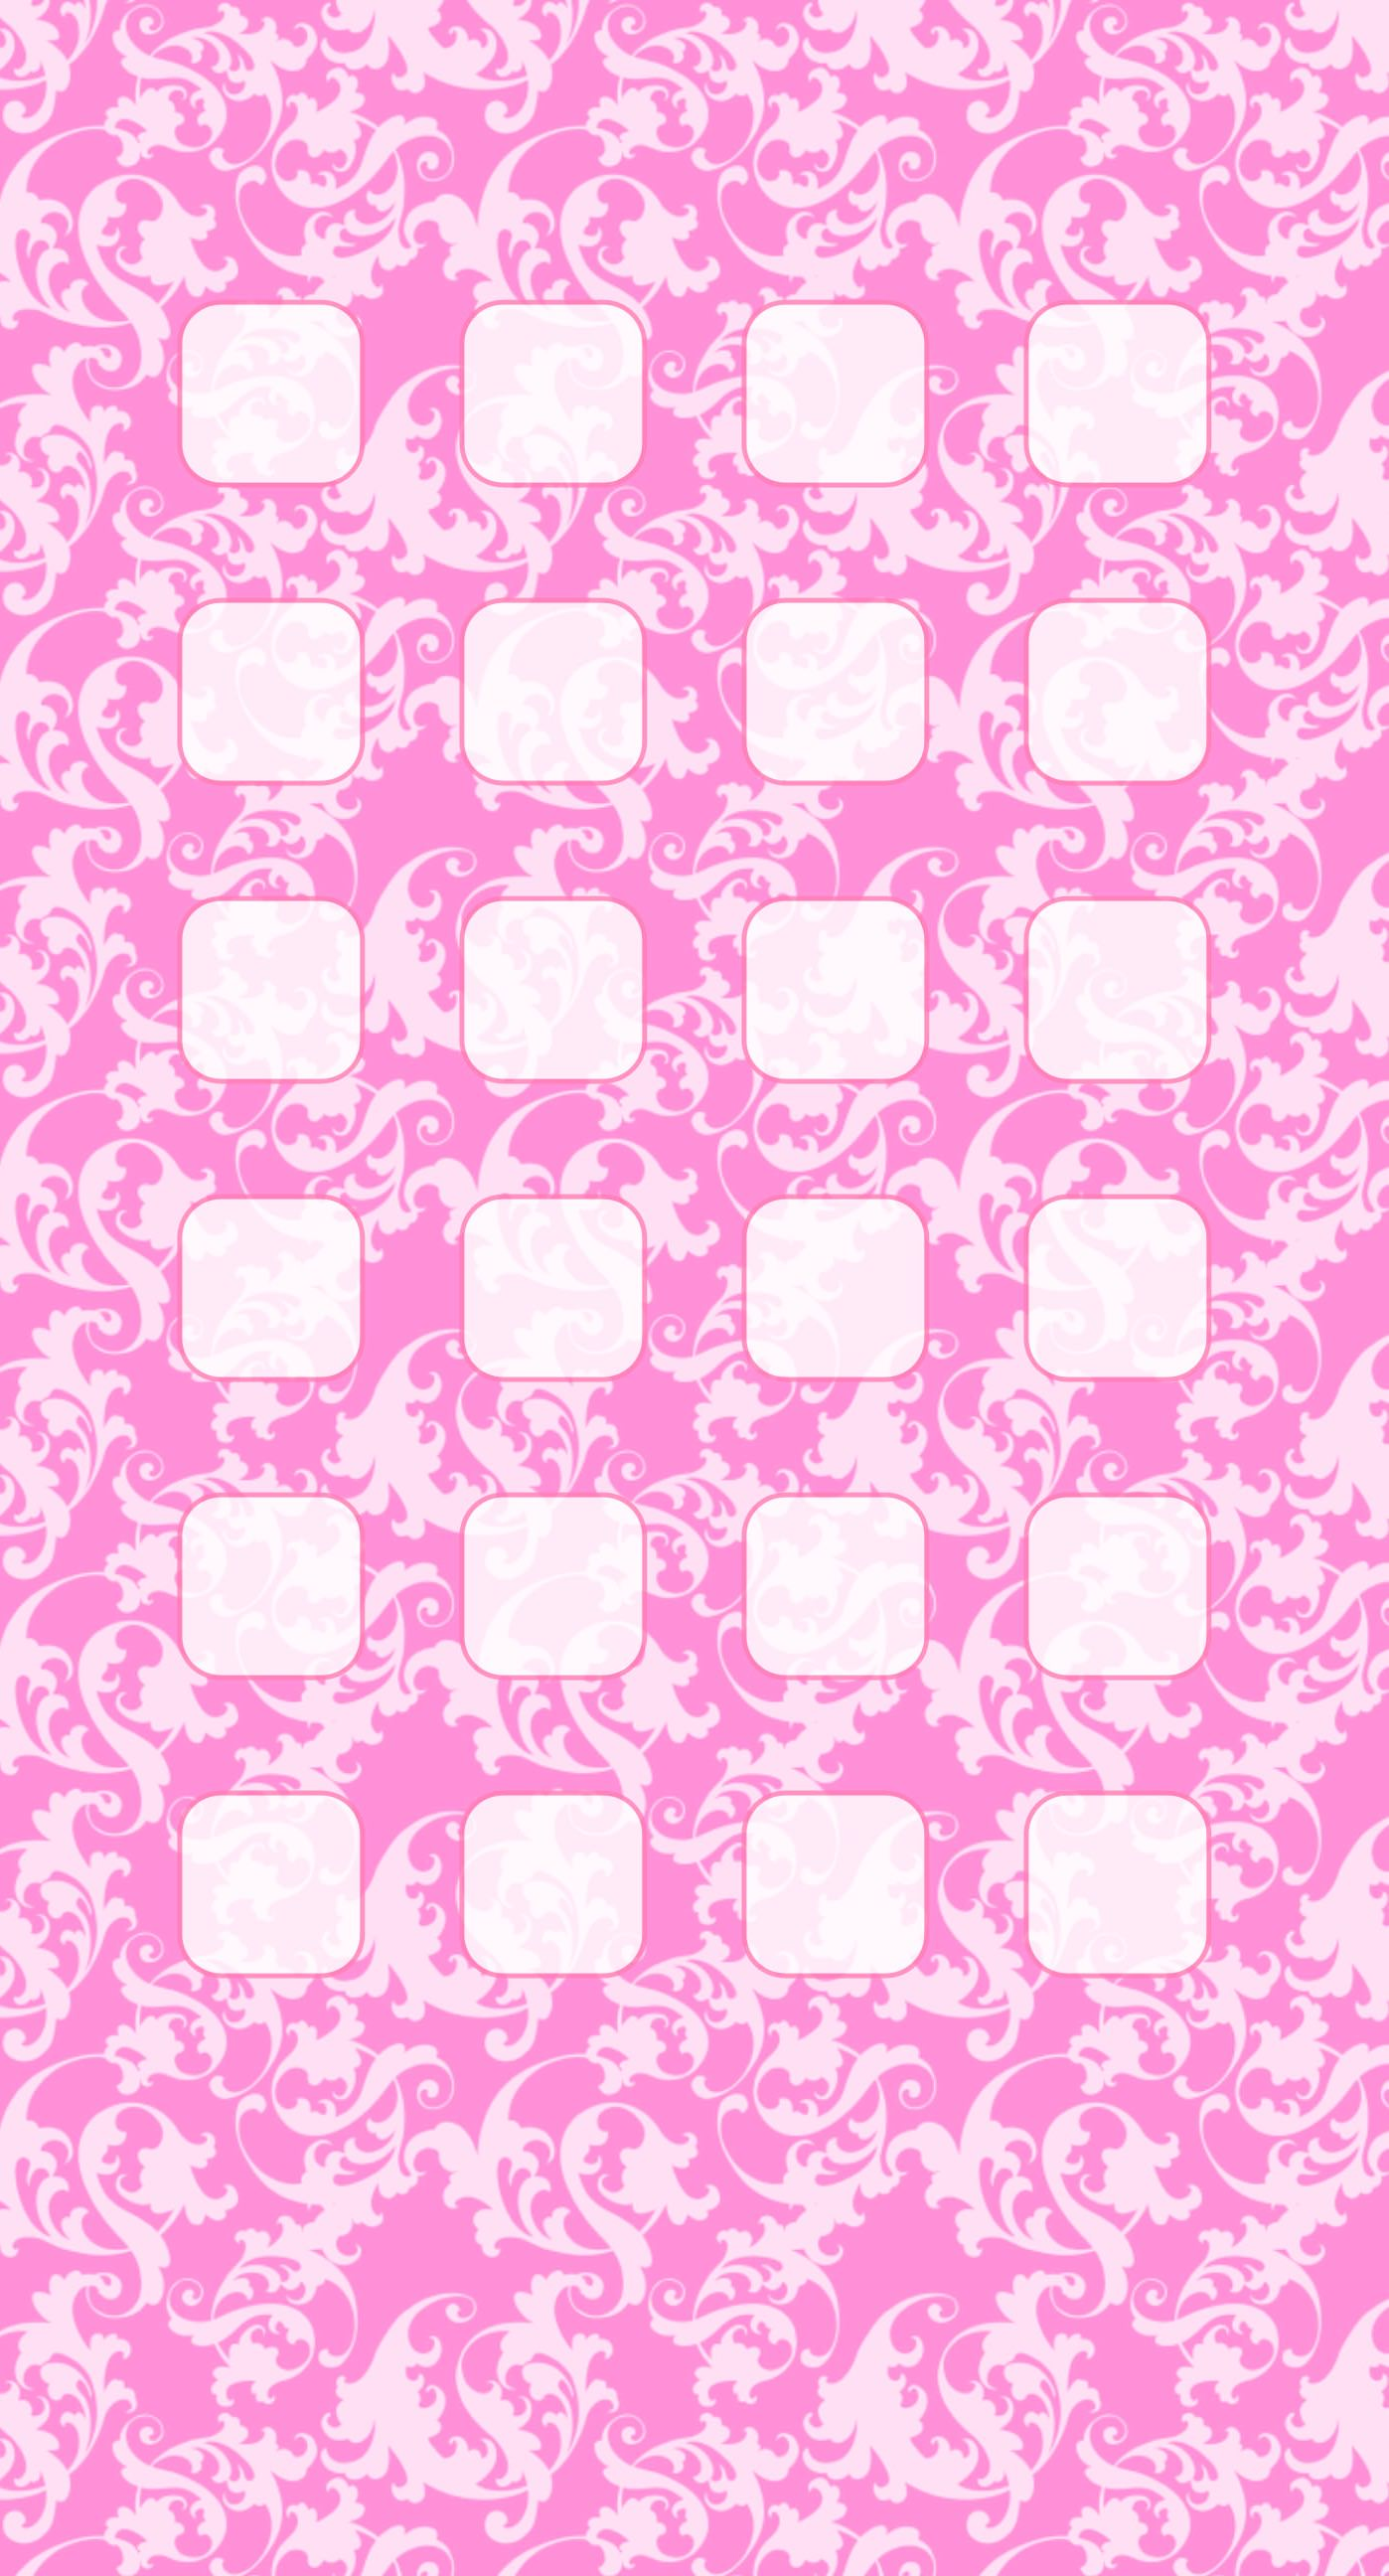 Background Iphone 6 Plus Pink